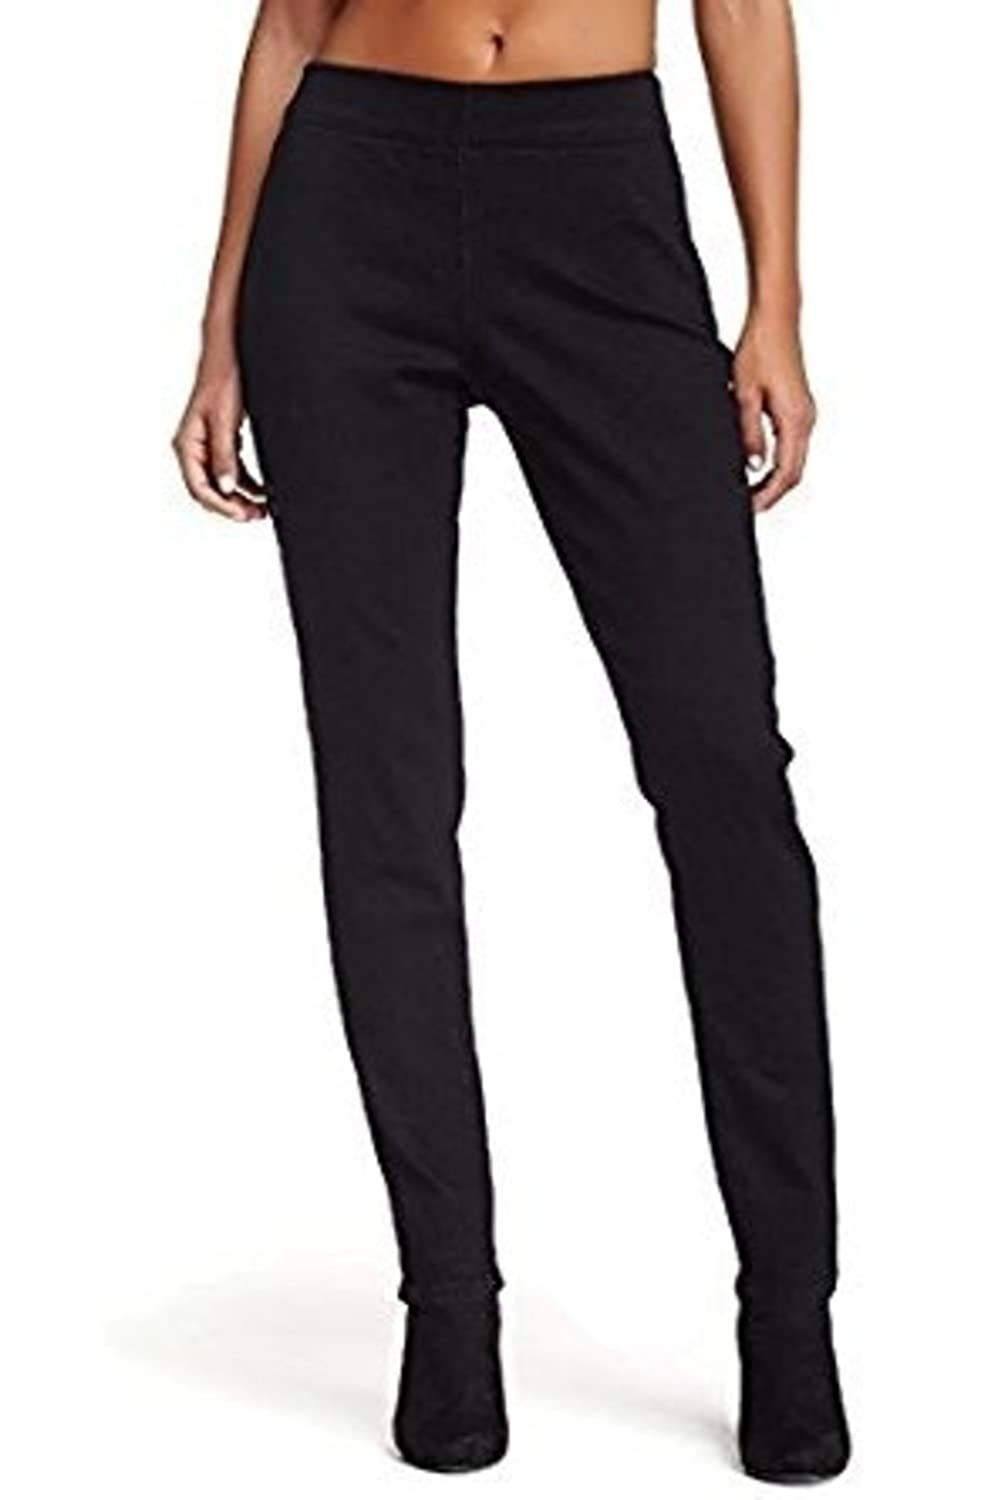 NYDJ Evie Pull On Legging Jean Black Womens Not Your Daughters Jeans Size 4P